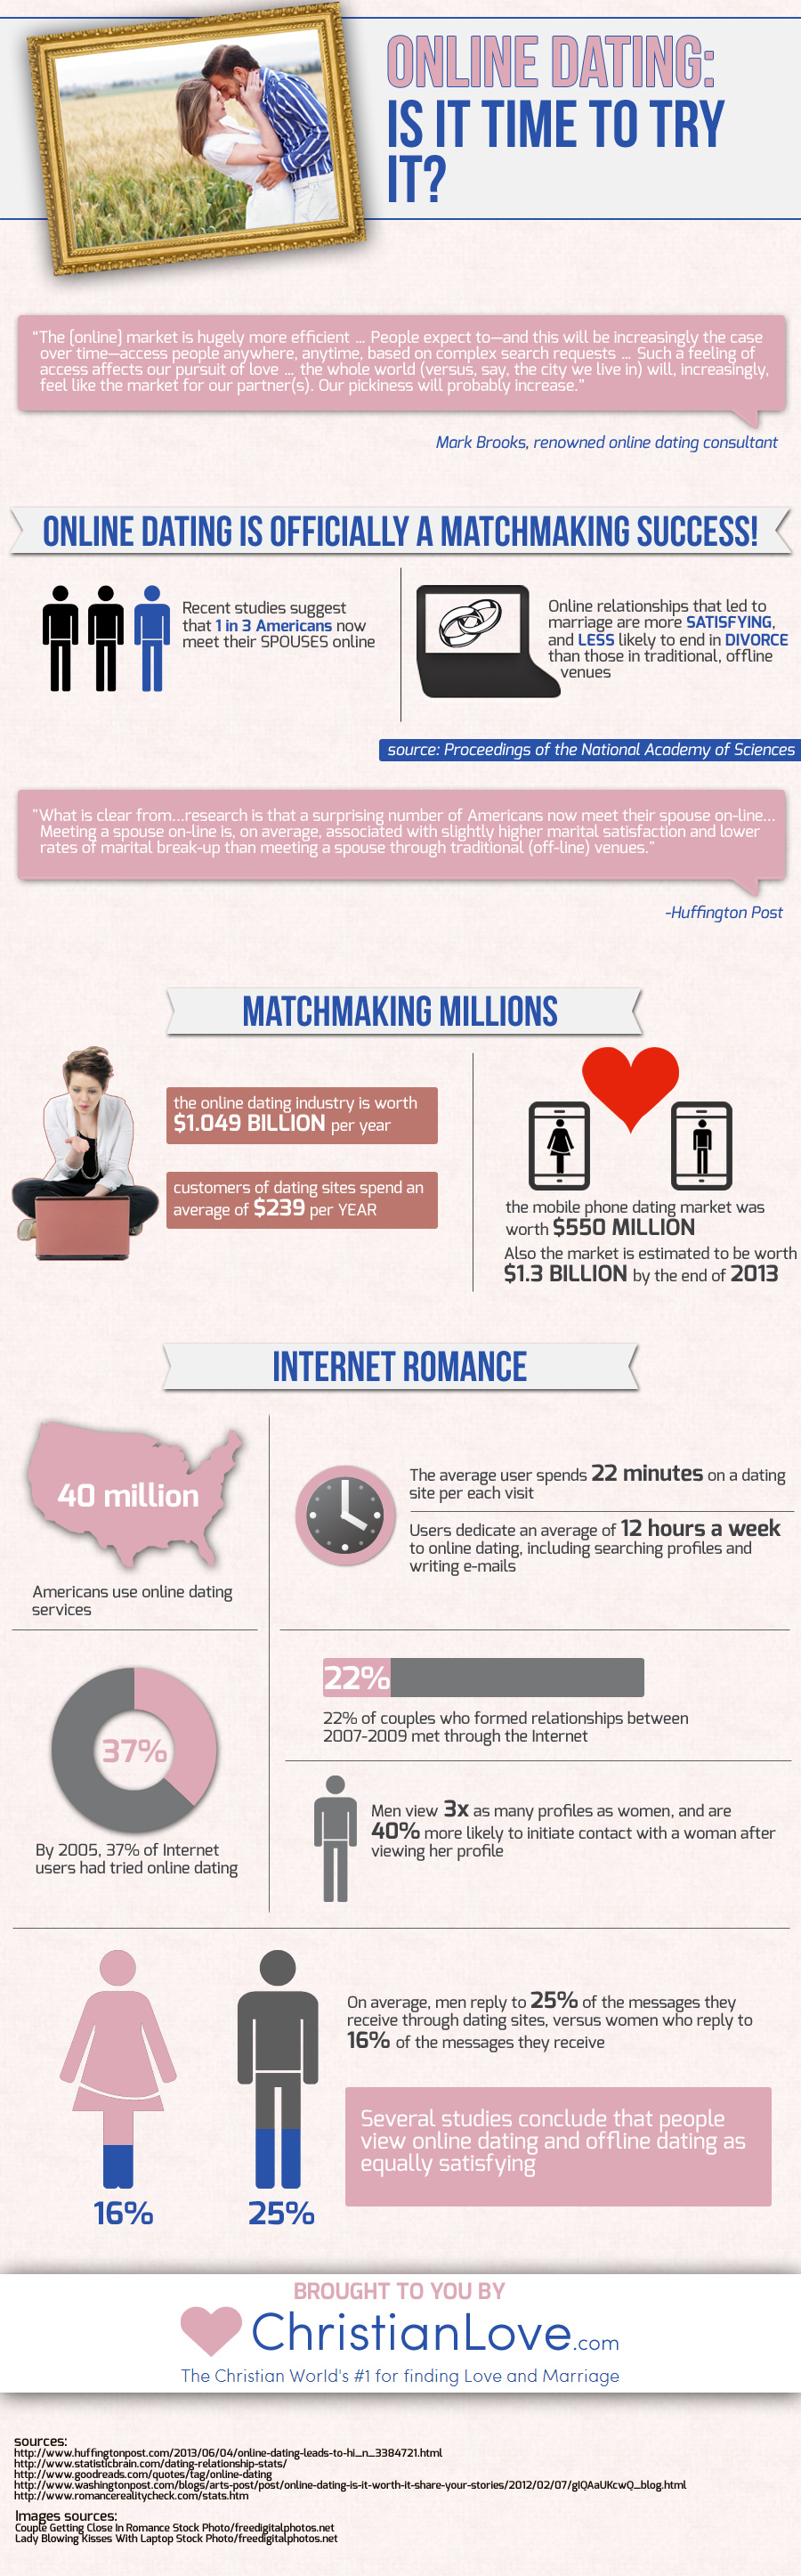 Online Dating: Is it Time to Try it?